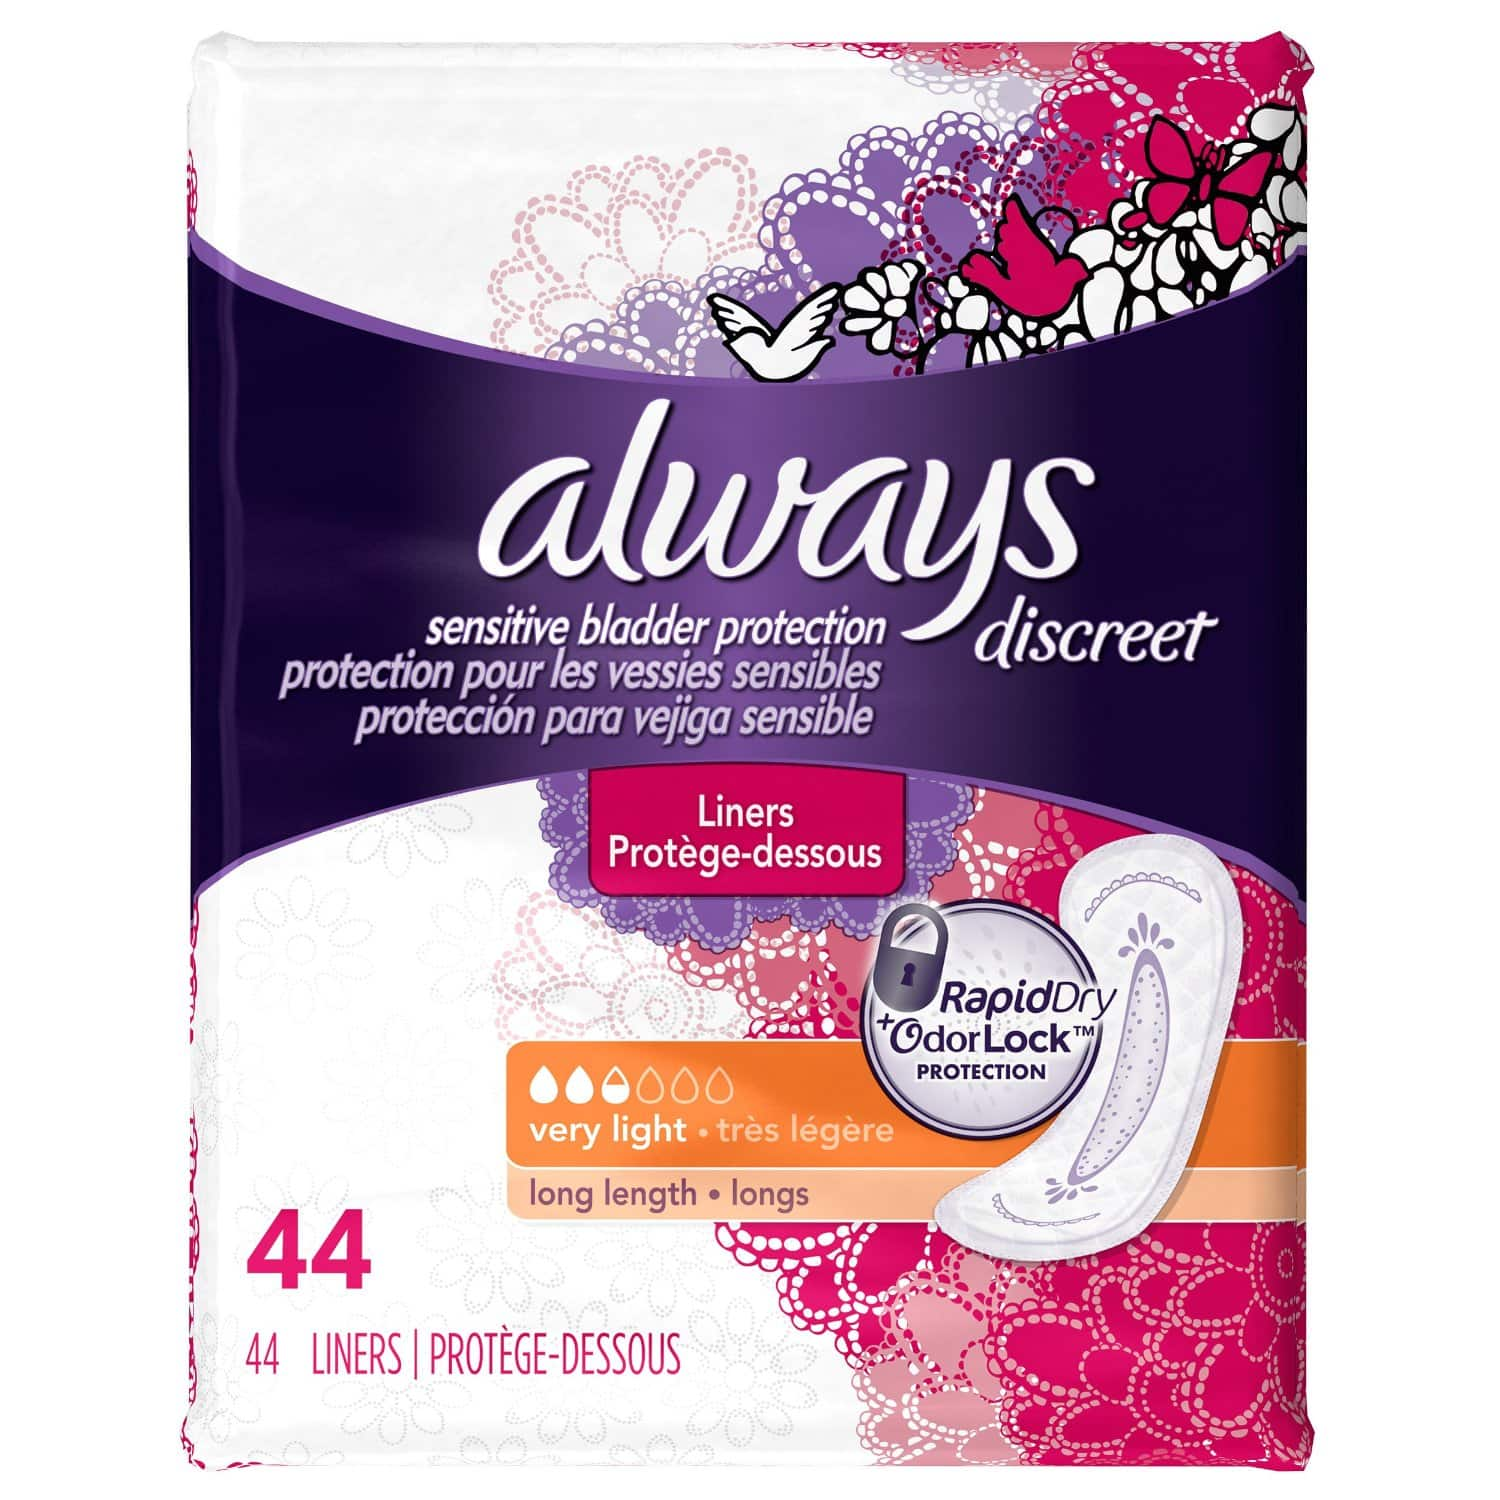 44-Count Always Discreet Incontinence Liners (Light & Long) $2.60 Free S/H @Amazon